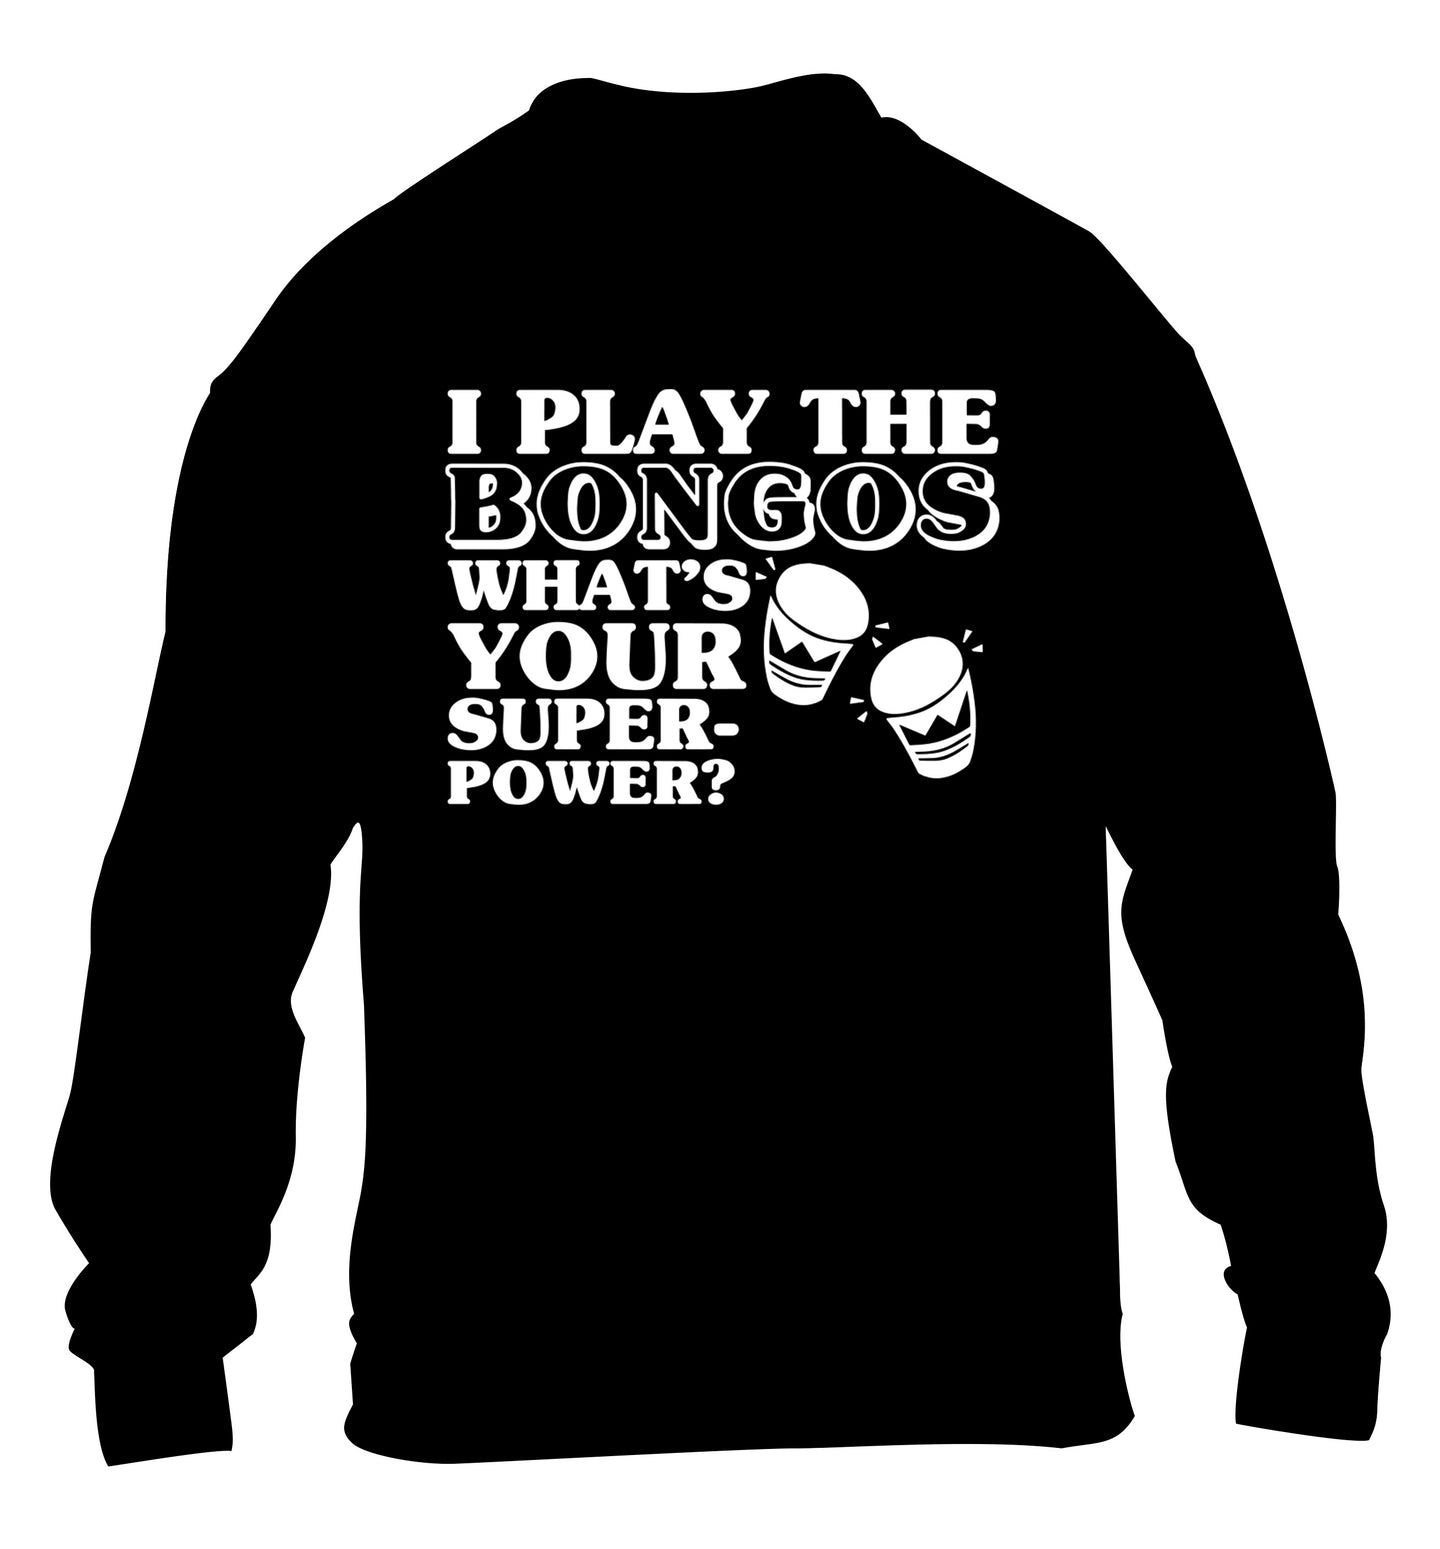 I play the bongos what's your superpower? children's black sweater 12-14 Years